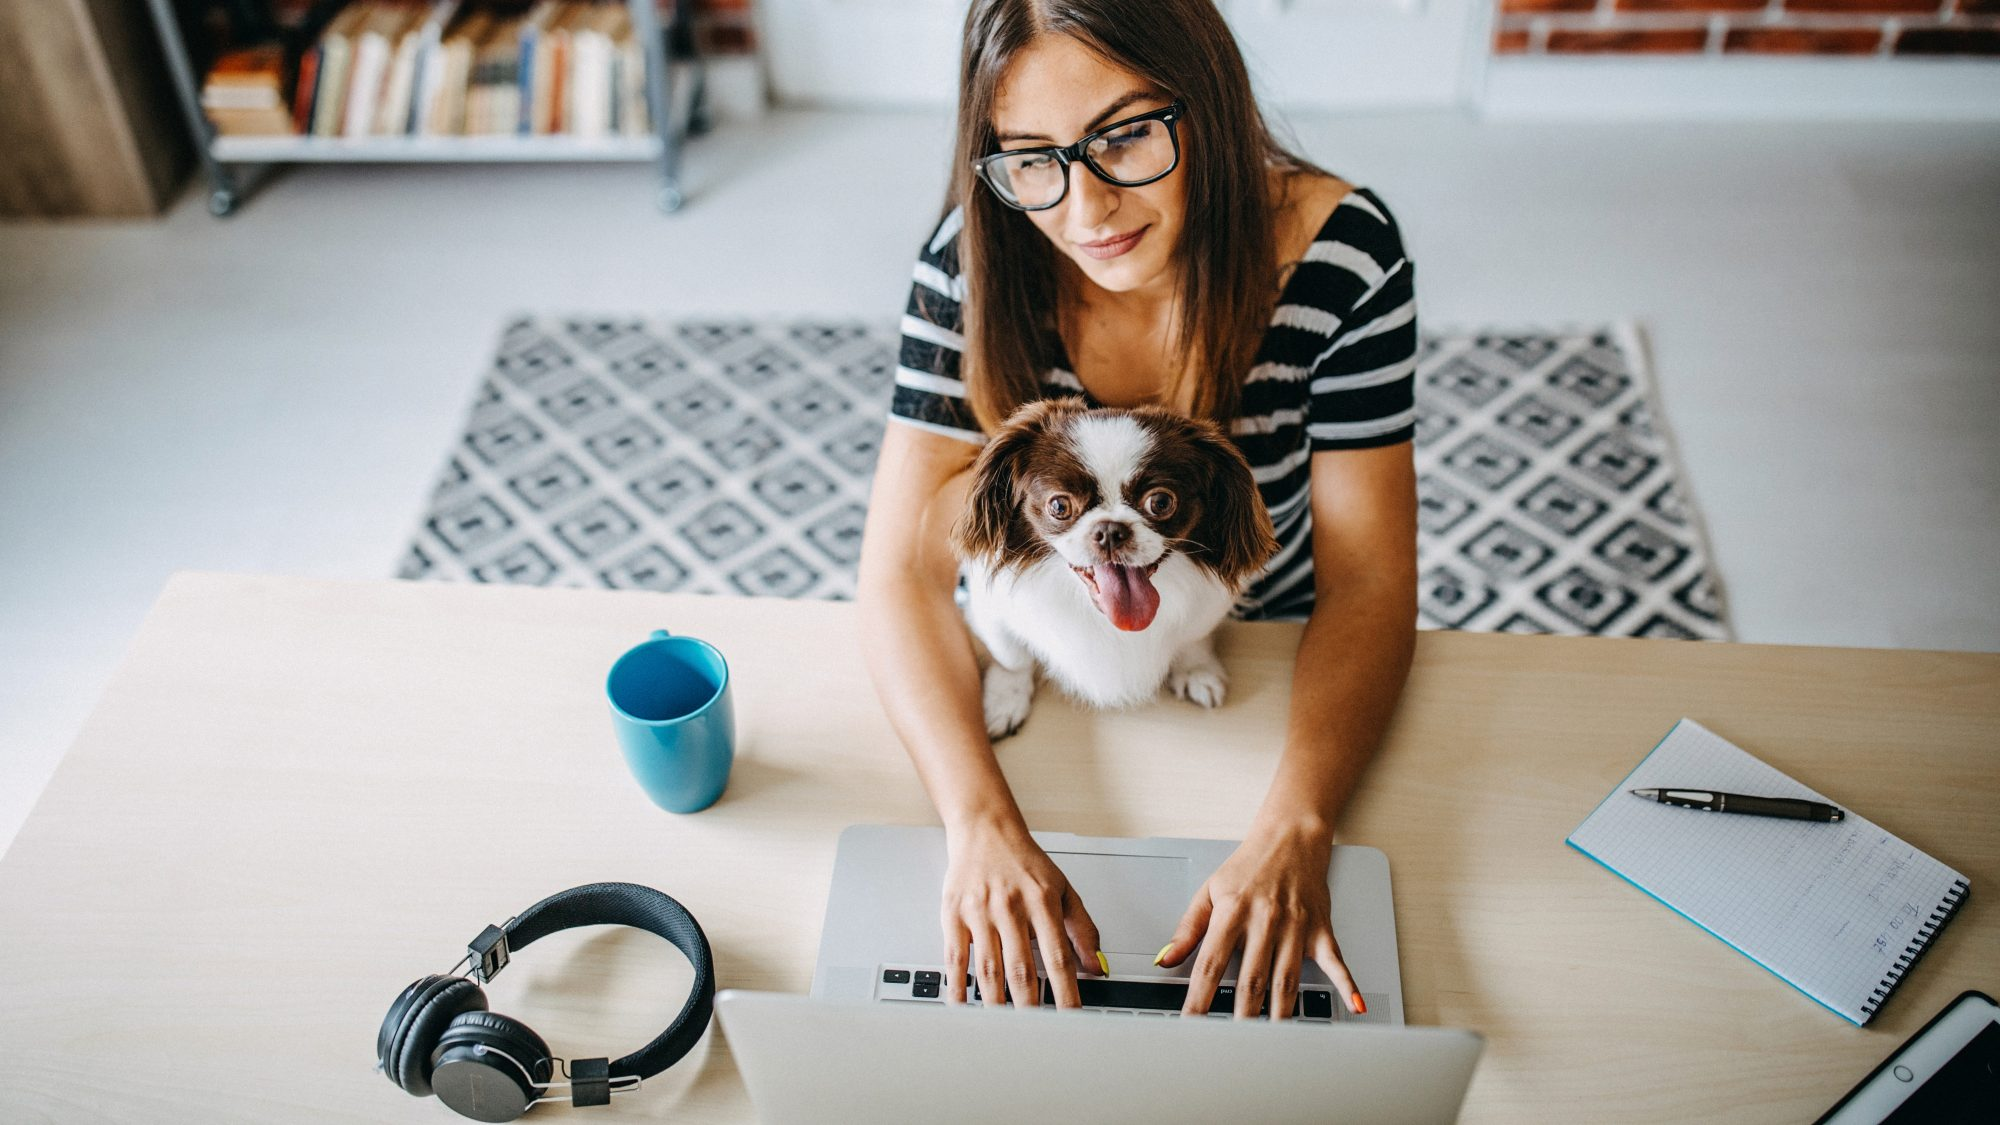 Working from home email, template, tips - how to ask to work from home post-pandemic (worker with dog)